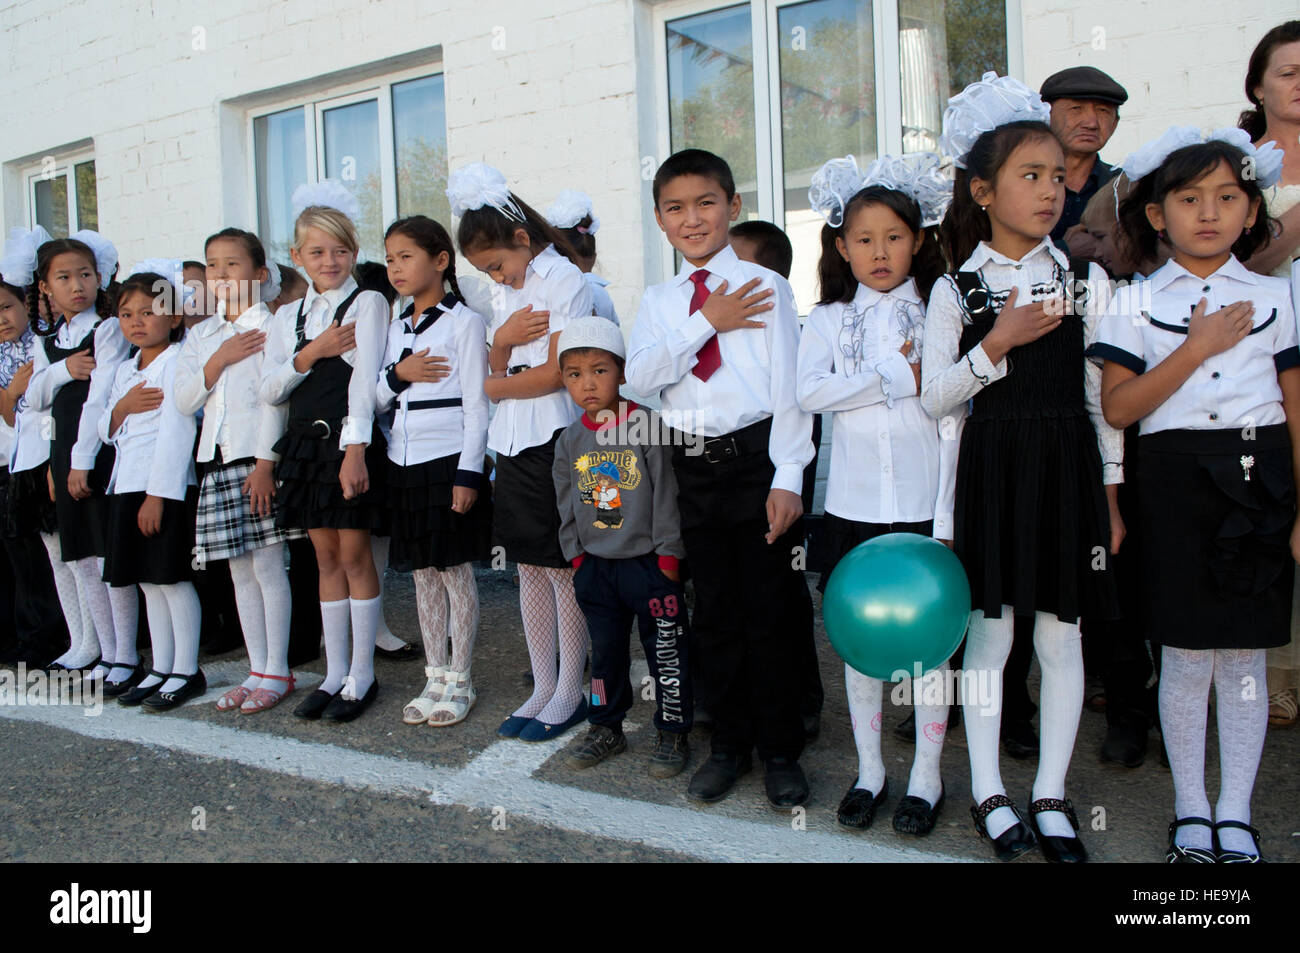 Students recite their national anthem during a 'first bell' celebration at Tort-kul school in Kyrgyzstan, - Stock Image